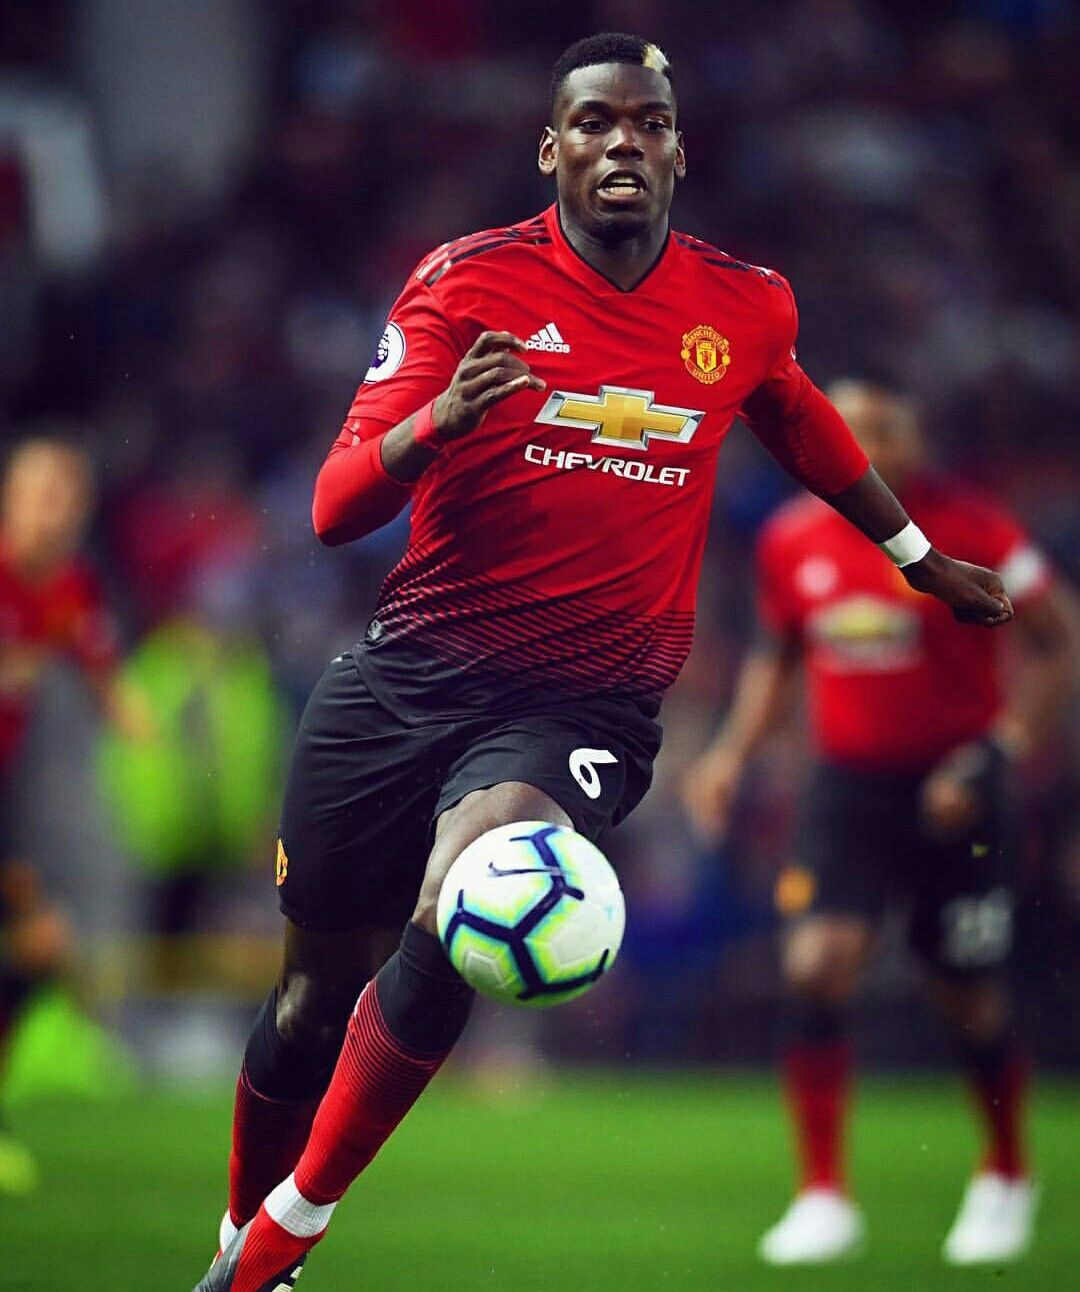 Paul Pogba Manchester United Vs Tottenham Manchester United Football Manchester United Football Club Paul Pogba Manchester United